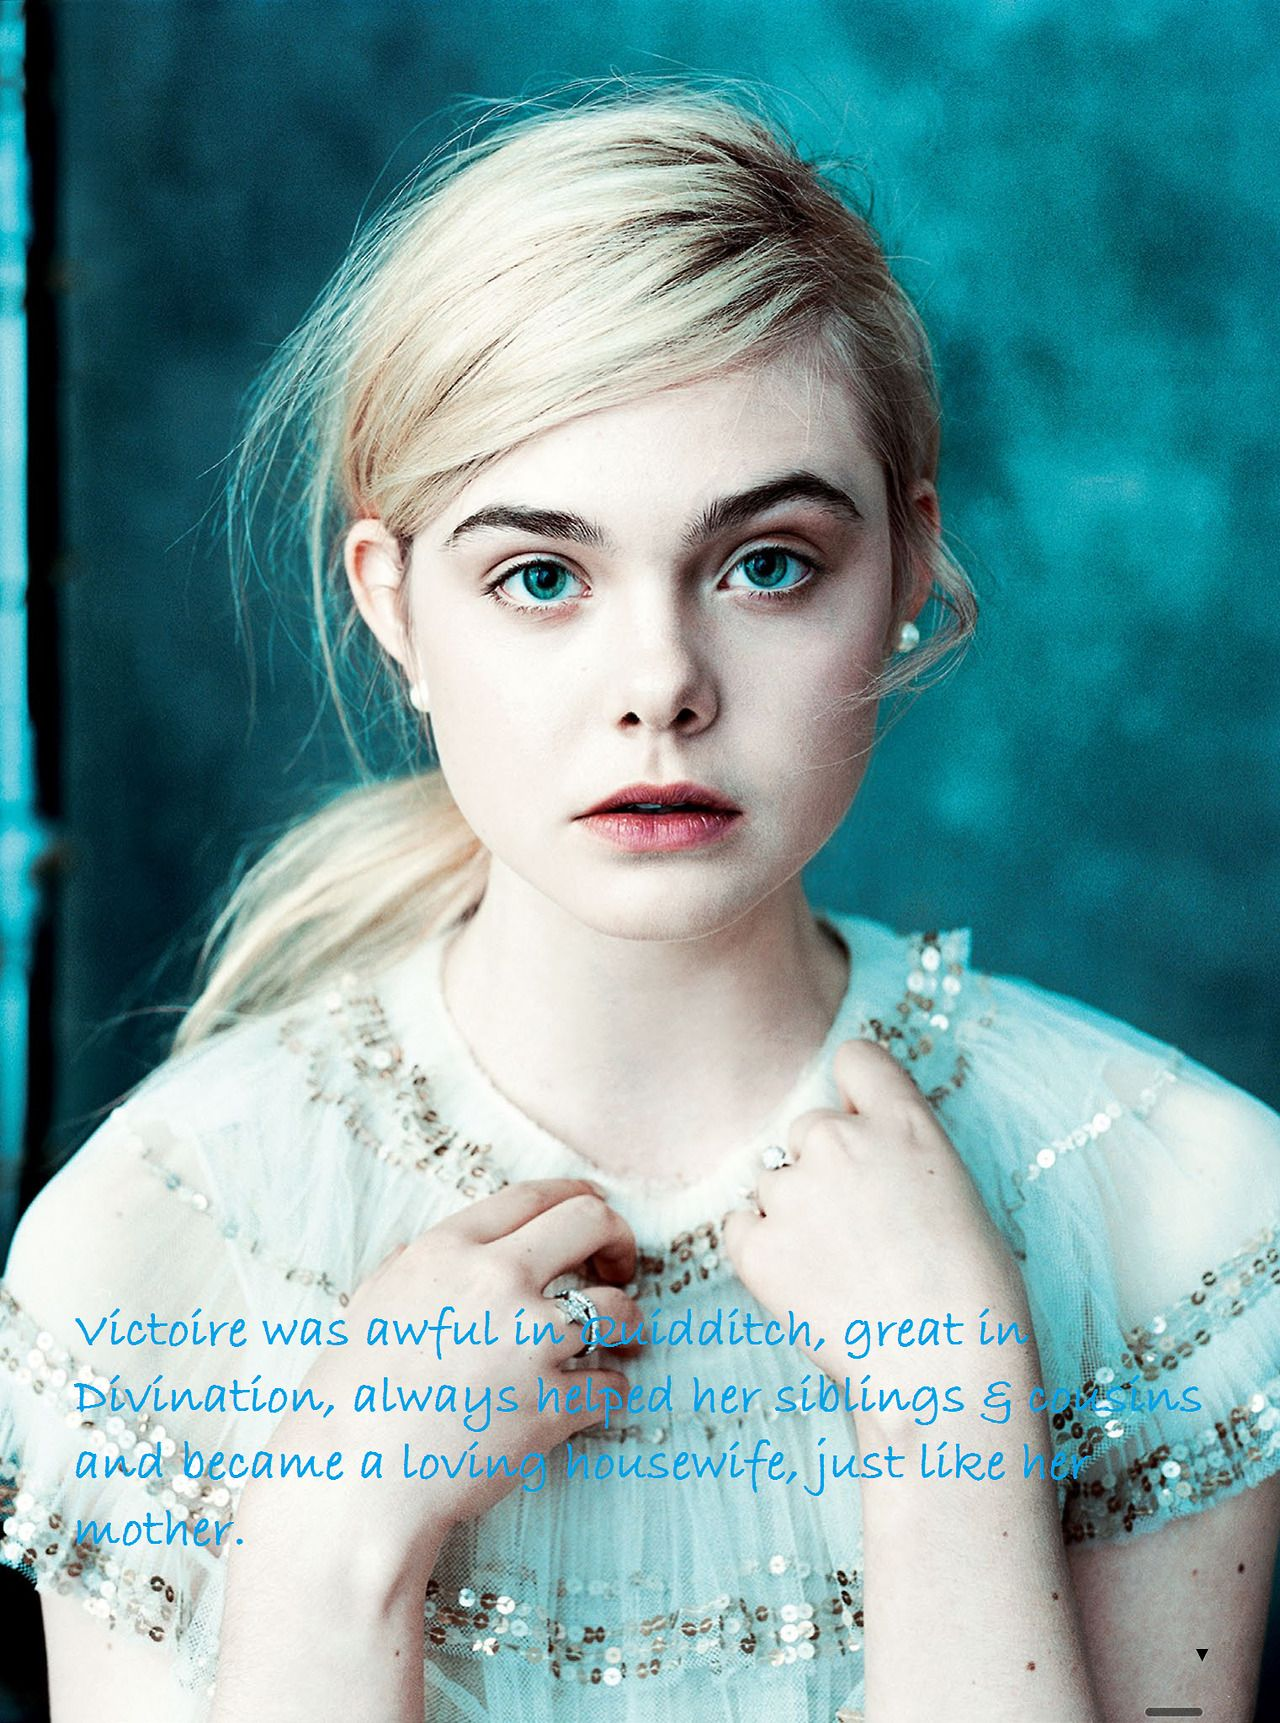 Harry Potter Next Generation Rose May Have Topped All Of Her Class Records Elle Fanning Harry Potter Next Generation Photography Poses Women